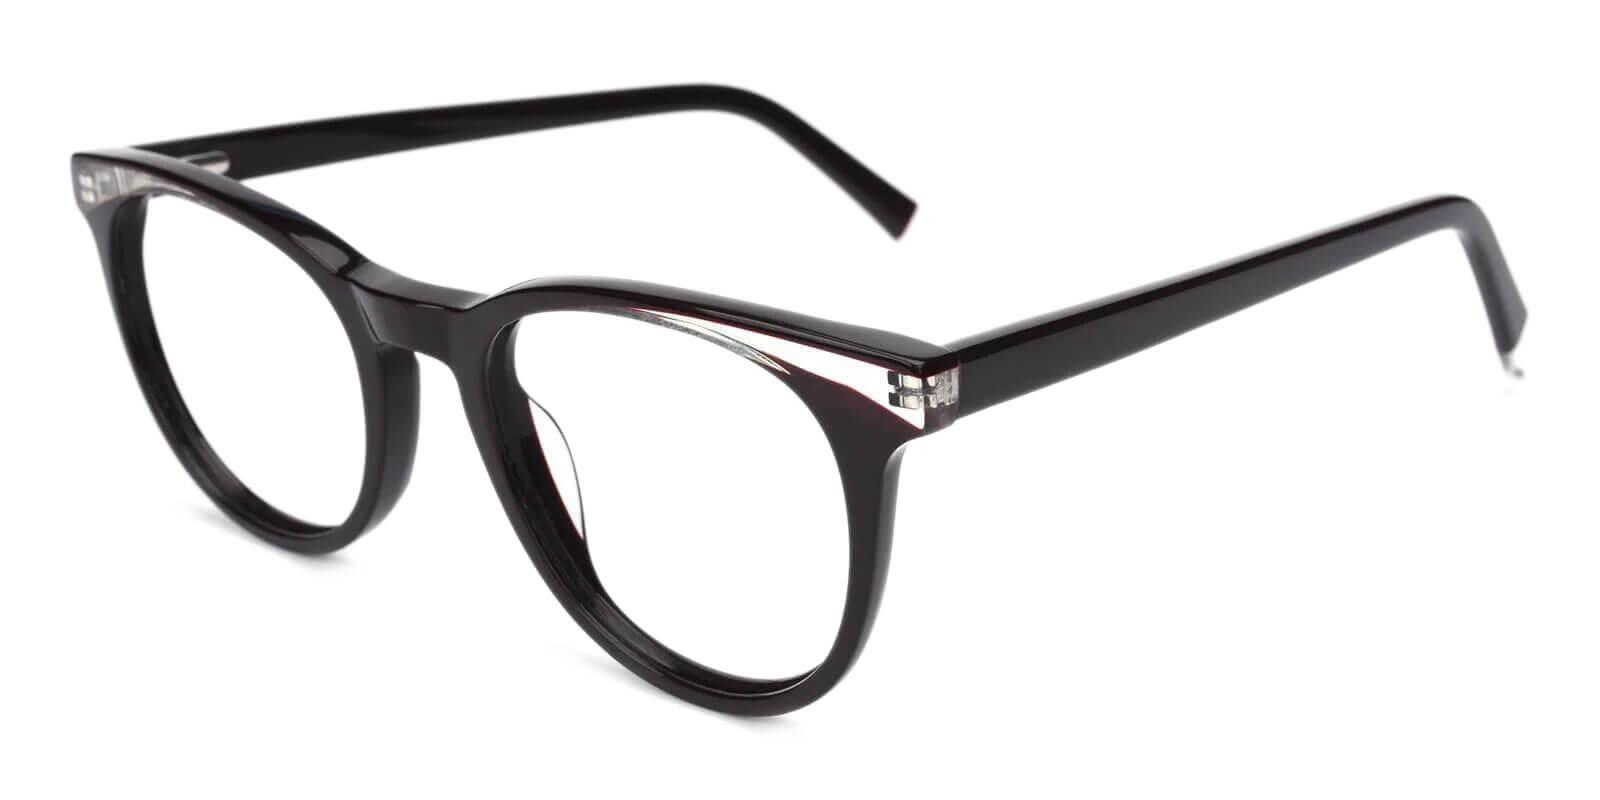 Dimona Black Acetate Eyeglasses , UniversalBridgeFit Frames from ABBE Glasses